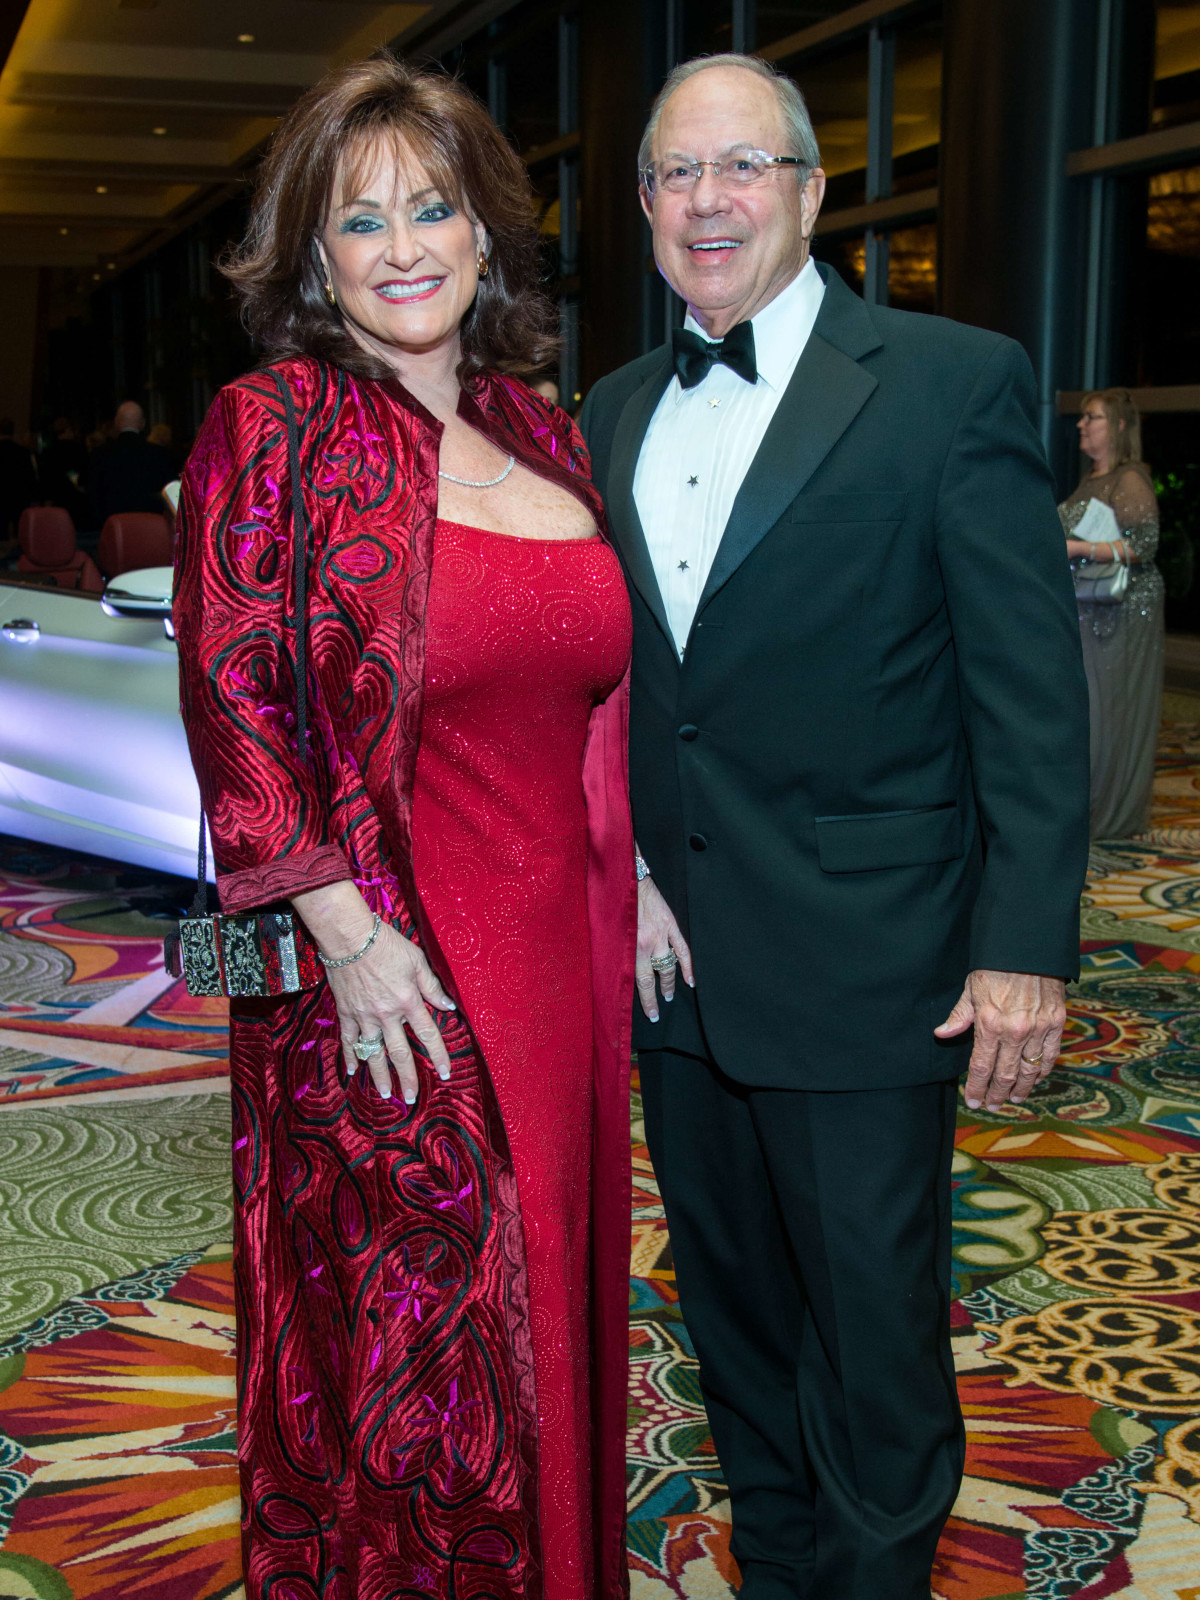 Houston, Women of Distinction fashionable gowns, Feb 2017, Carolyn Faulk, Pat Studdert